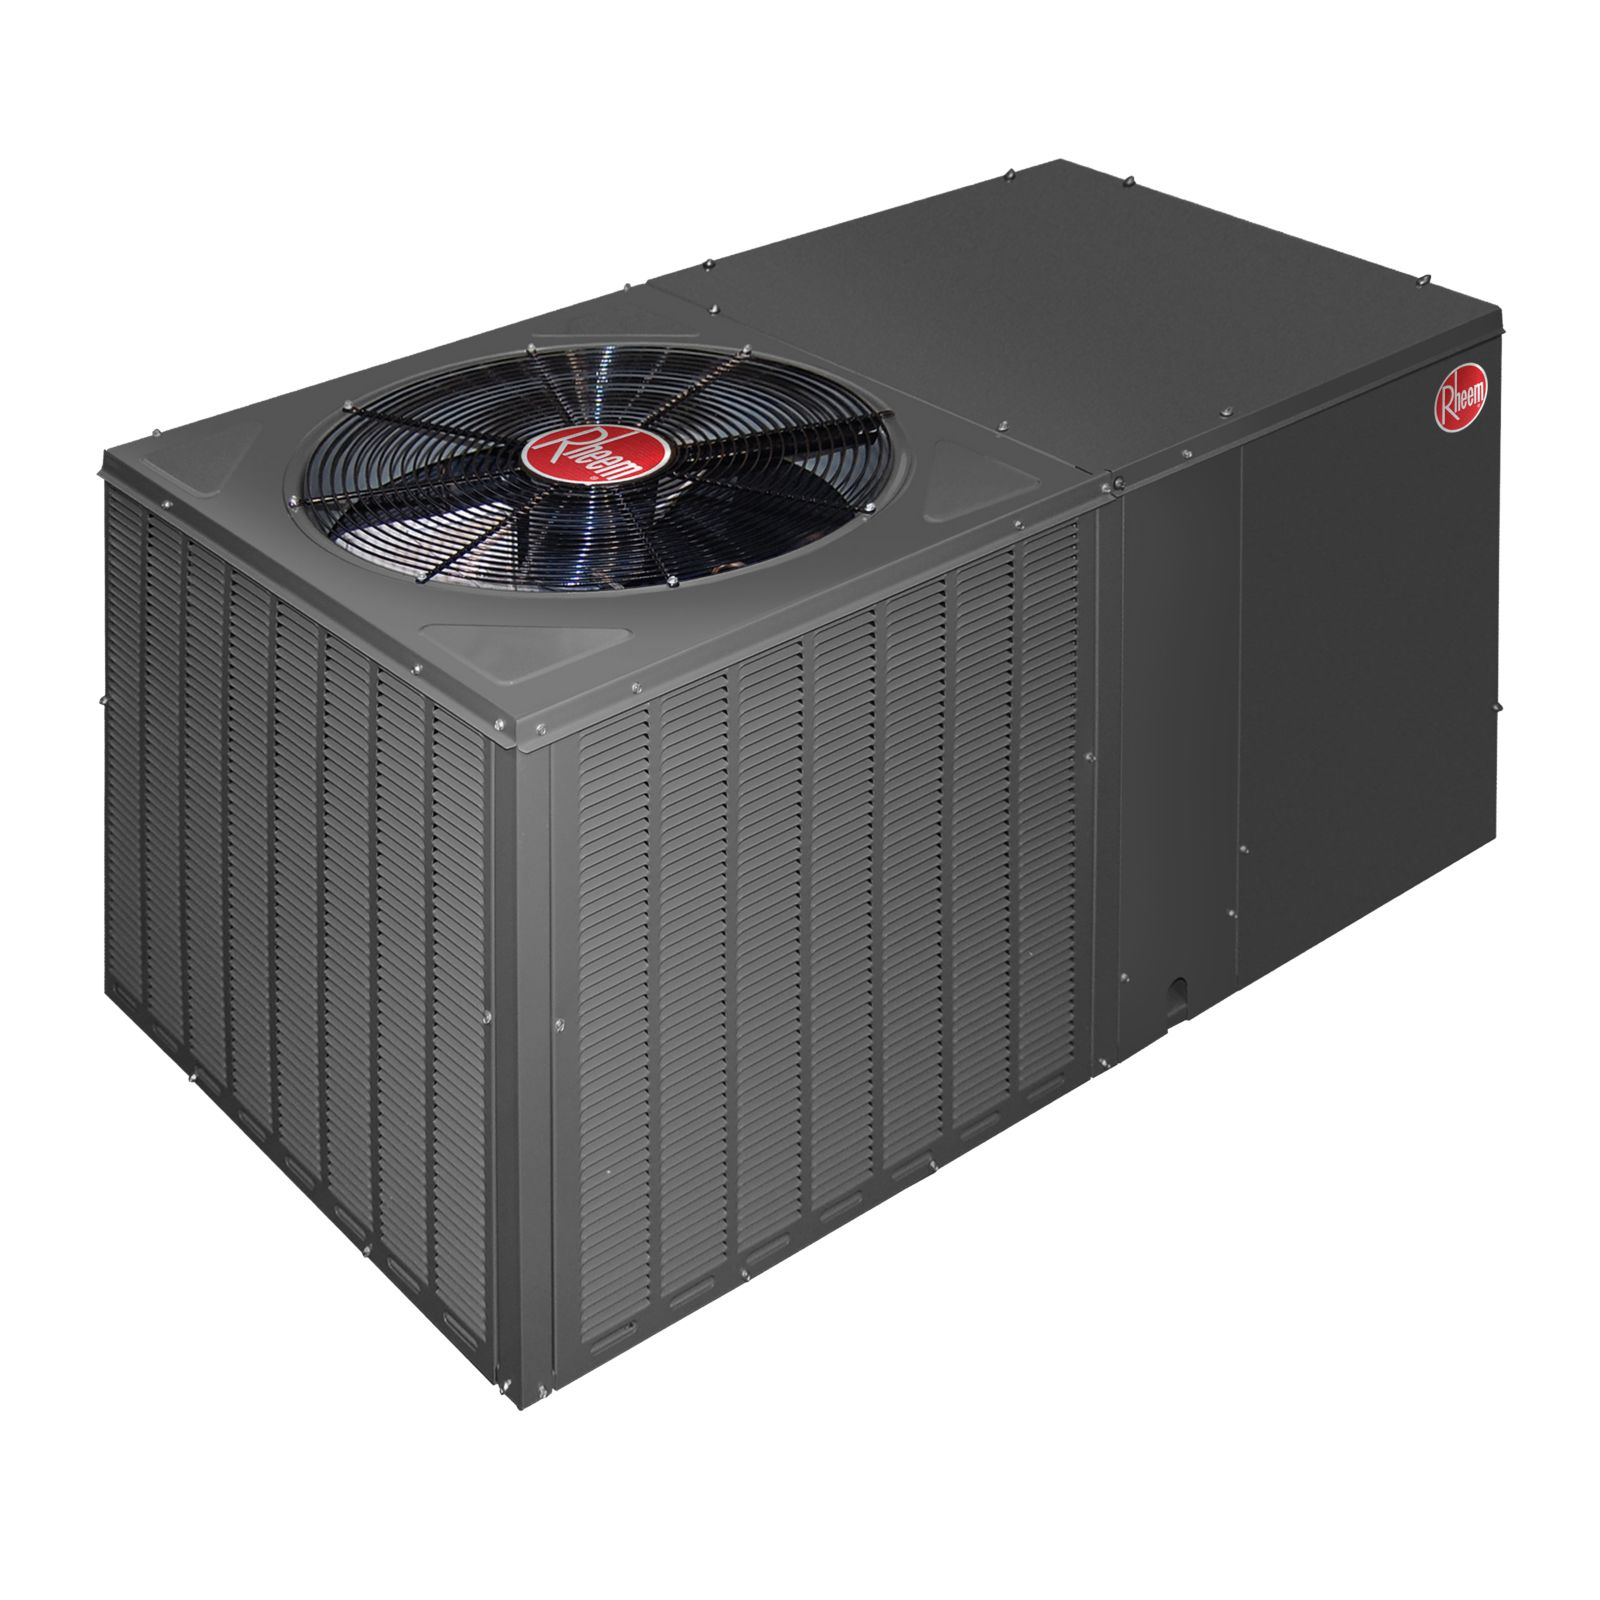 Rheem RQNM-A030JK000 - Classic 2 1/2 Ton, 13 SEER, Packaged Heat Pump With Horizontal Discharge, 208-230 V, 1 Ph, 60 Hz